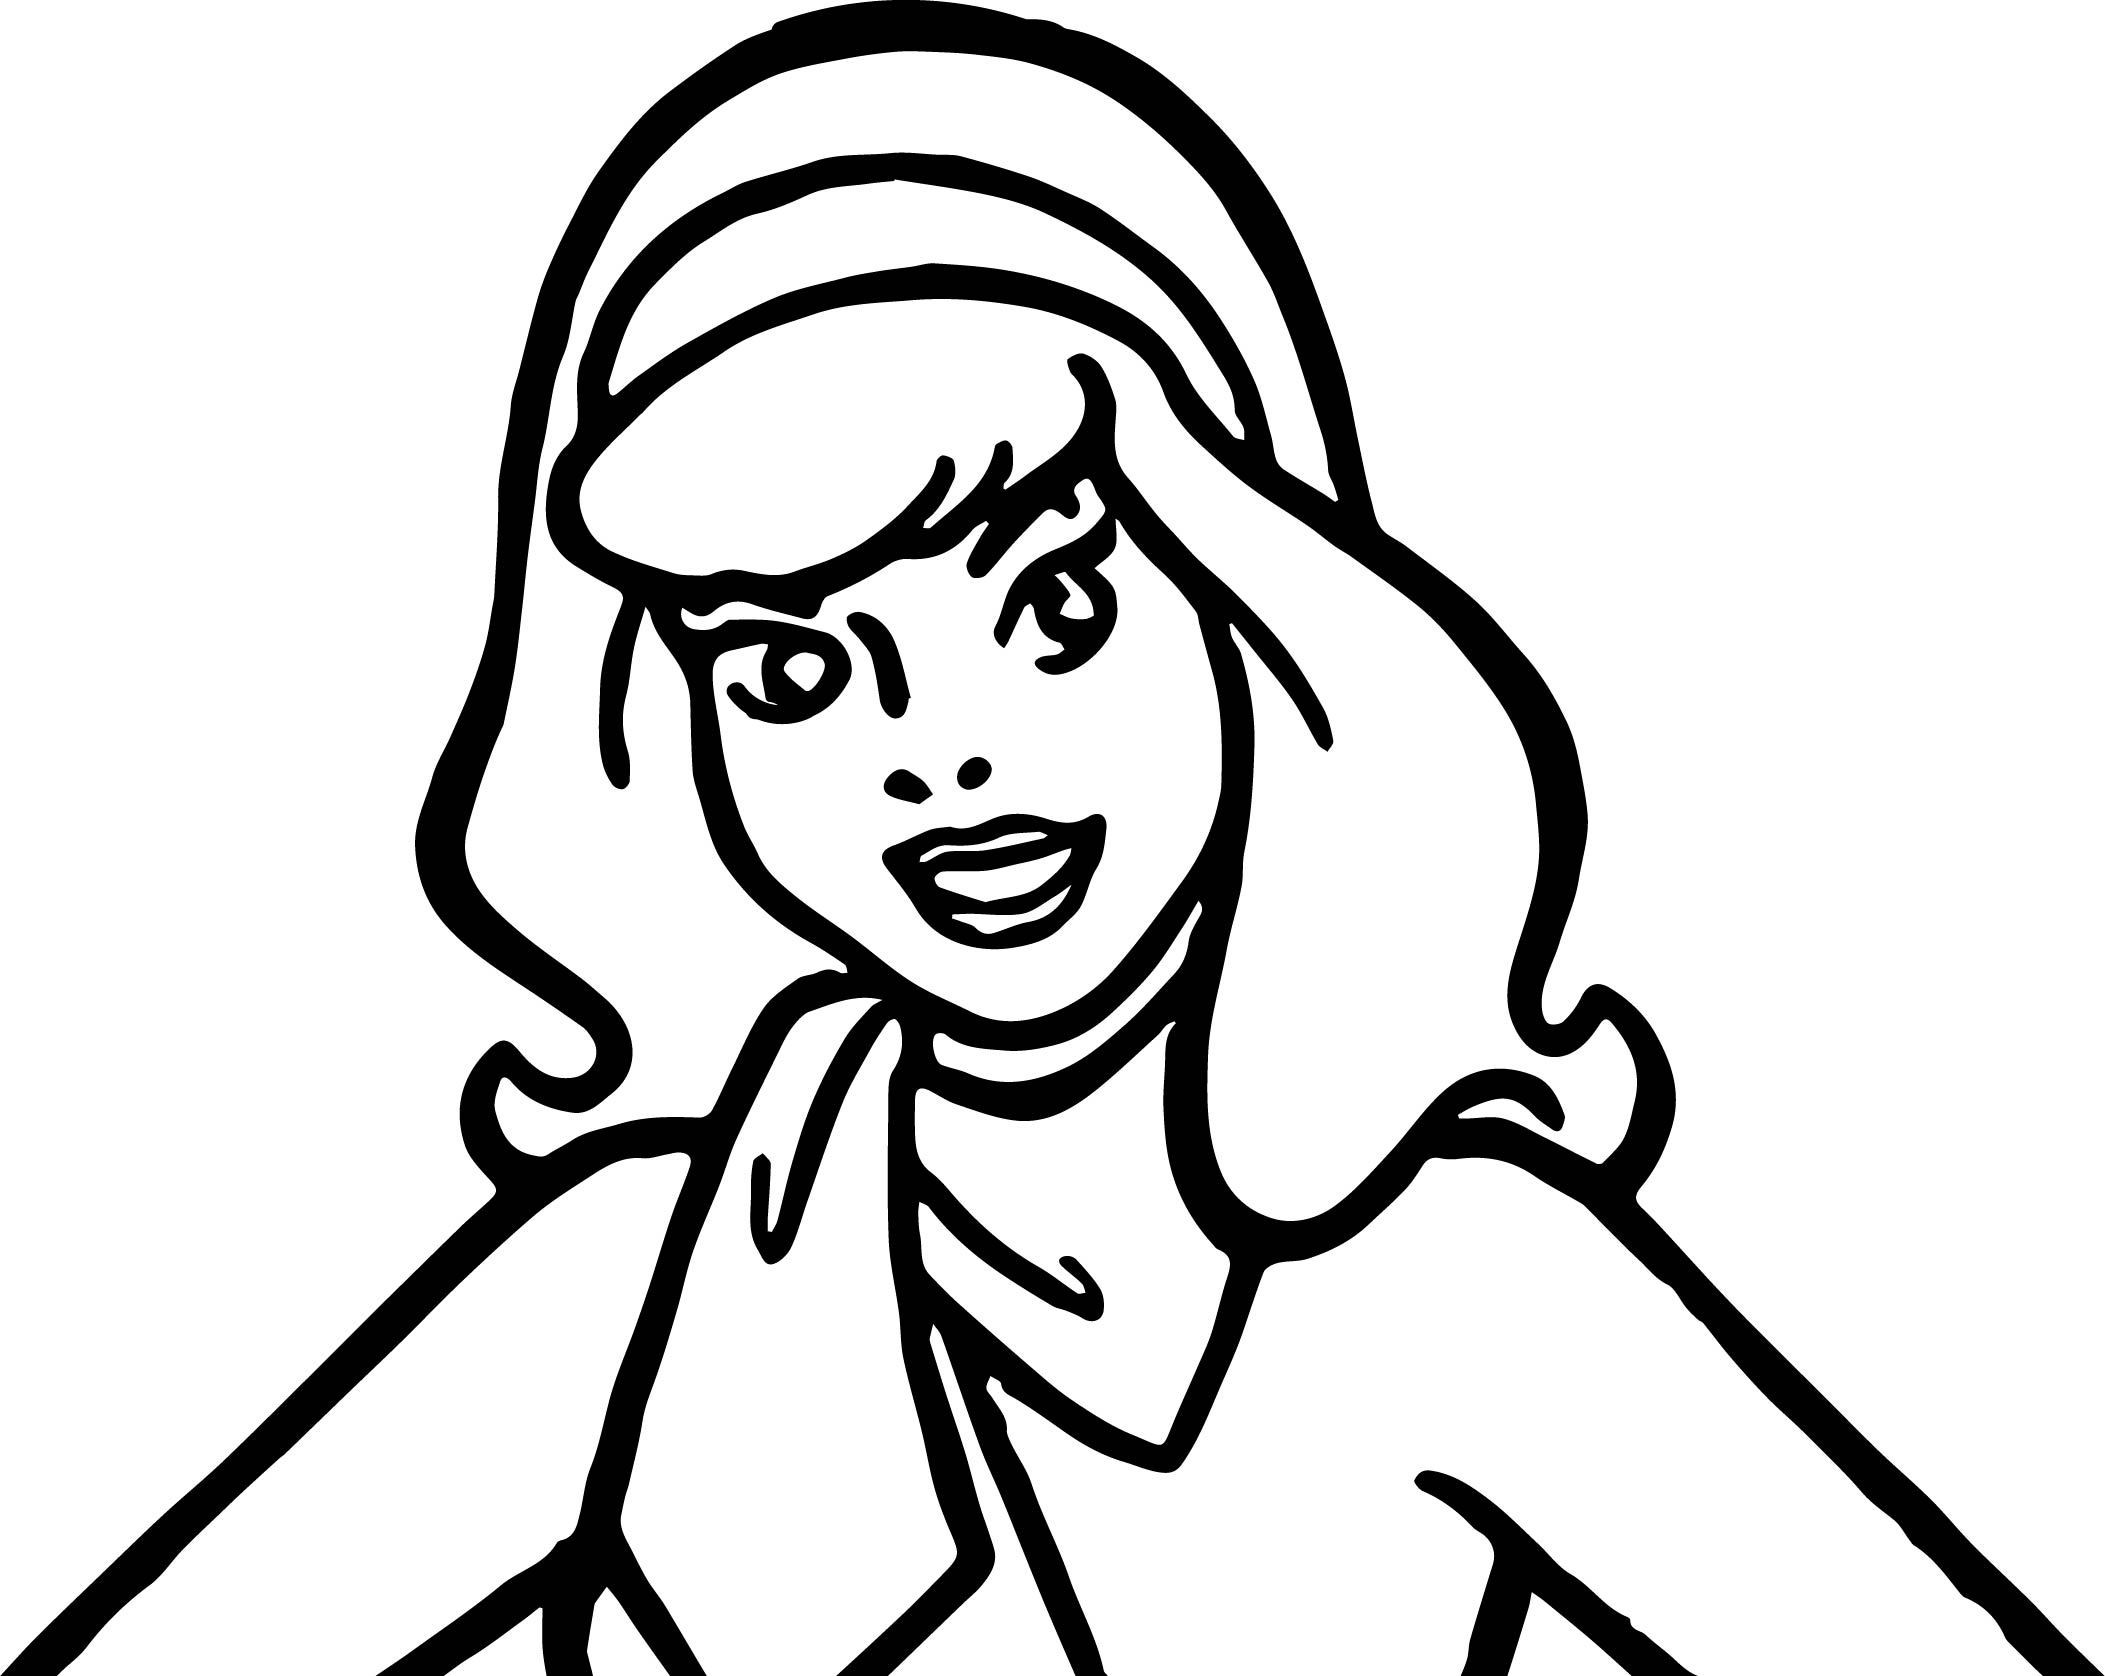 Coloring Sheets For Boys Scooby Doo  awesome Daphne Scooby Doo Make Up Coloring Page